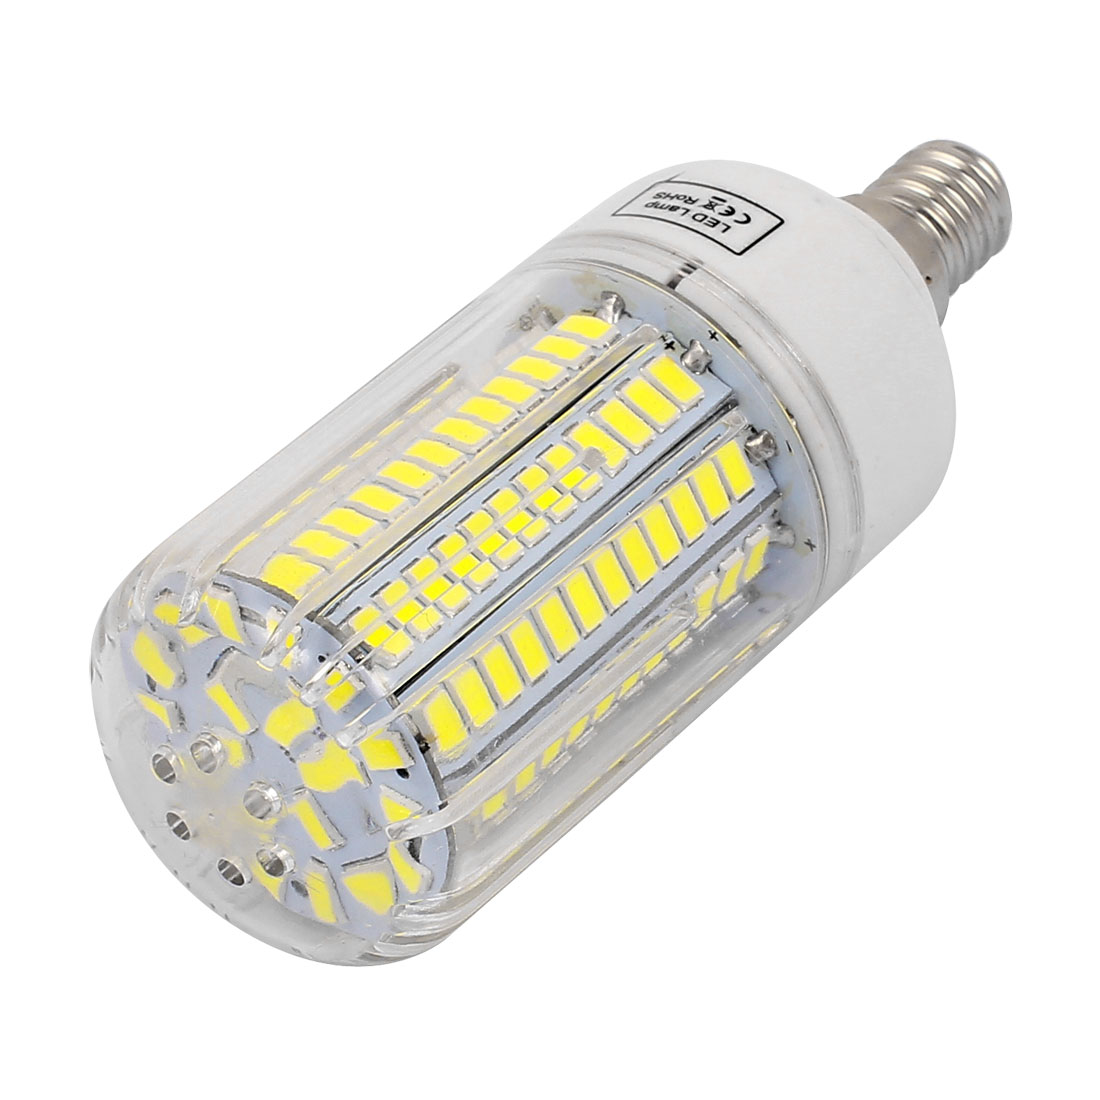 AC 220V E14 12W Pure White 140 LEDs 5736 SMD Energy Saving Silicone Corn Light Bulb